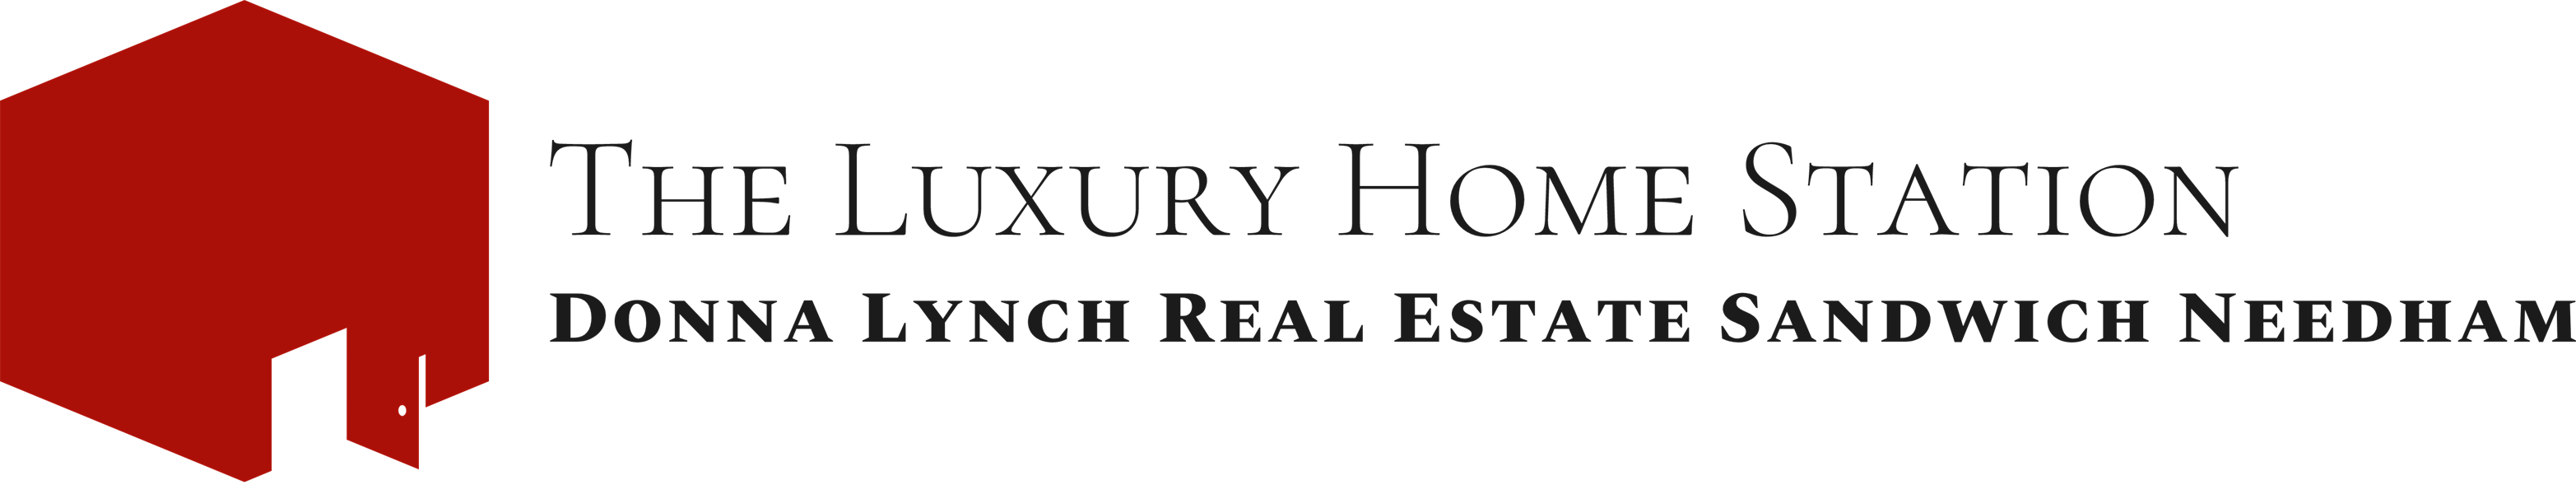 Donna Lynch Real Estate  The Luxury Home Station